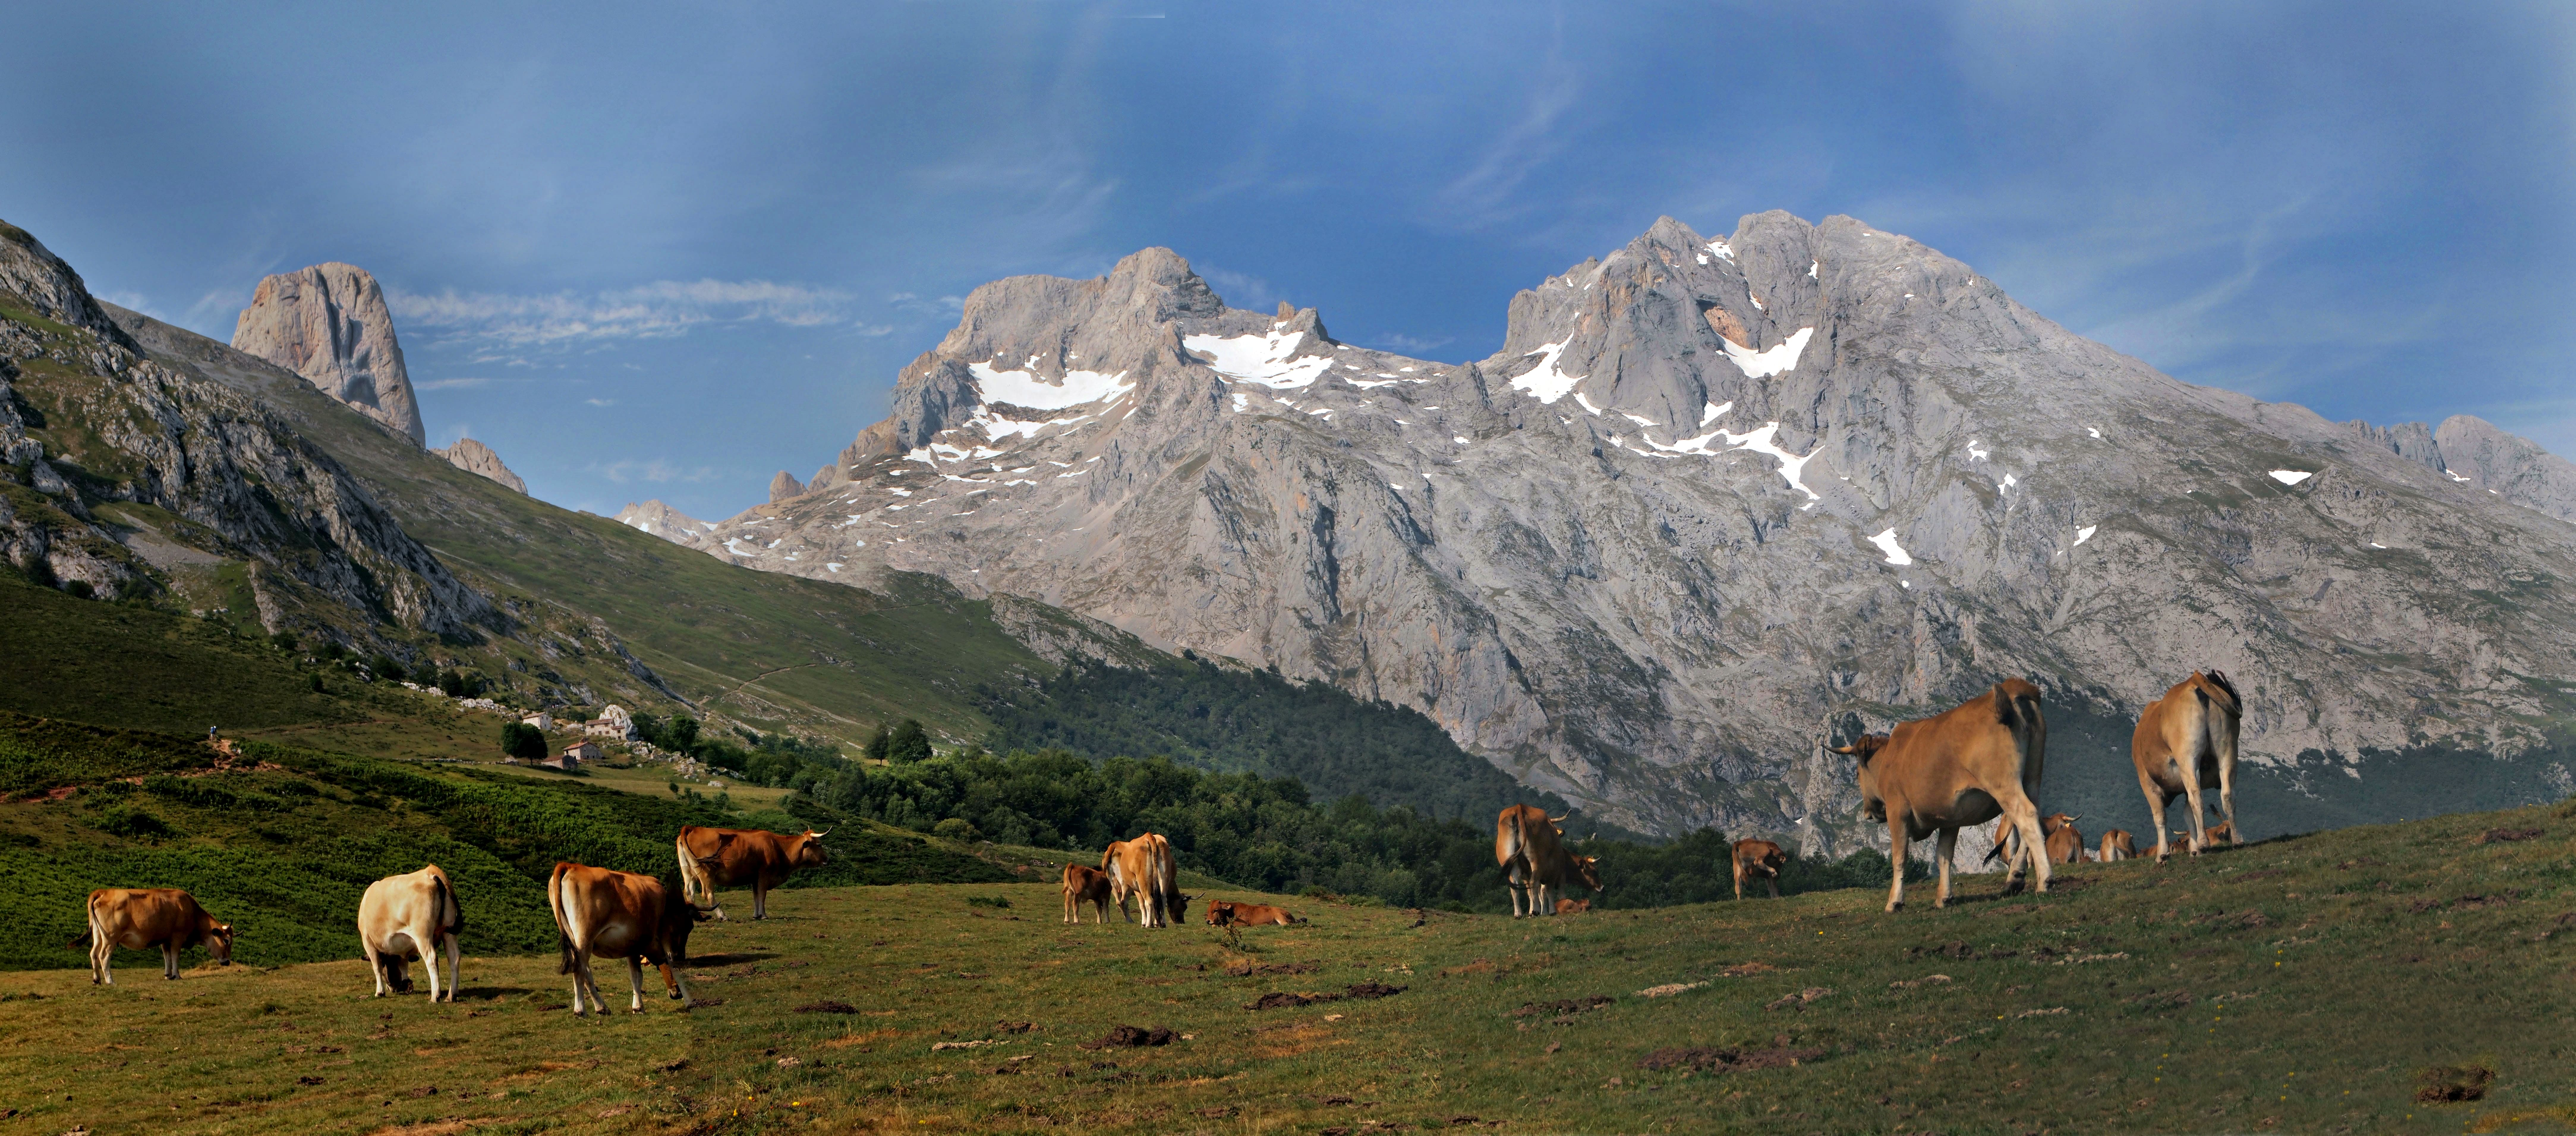 100 years of the Picos de Europa National Park